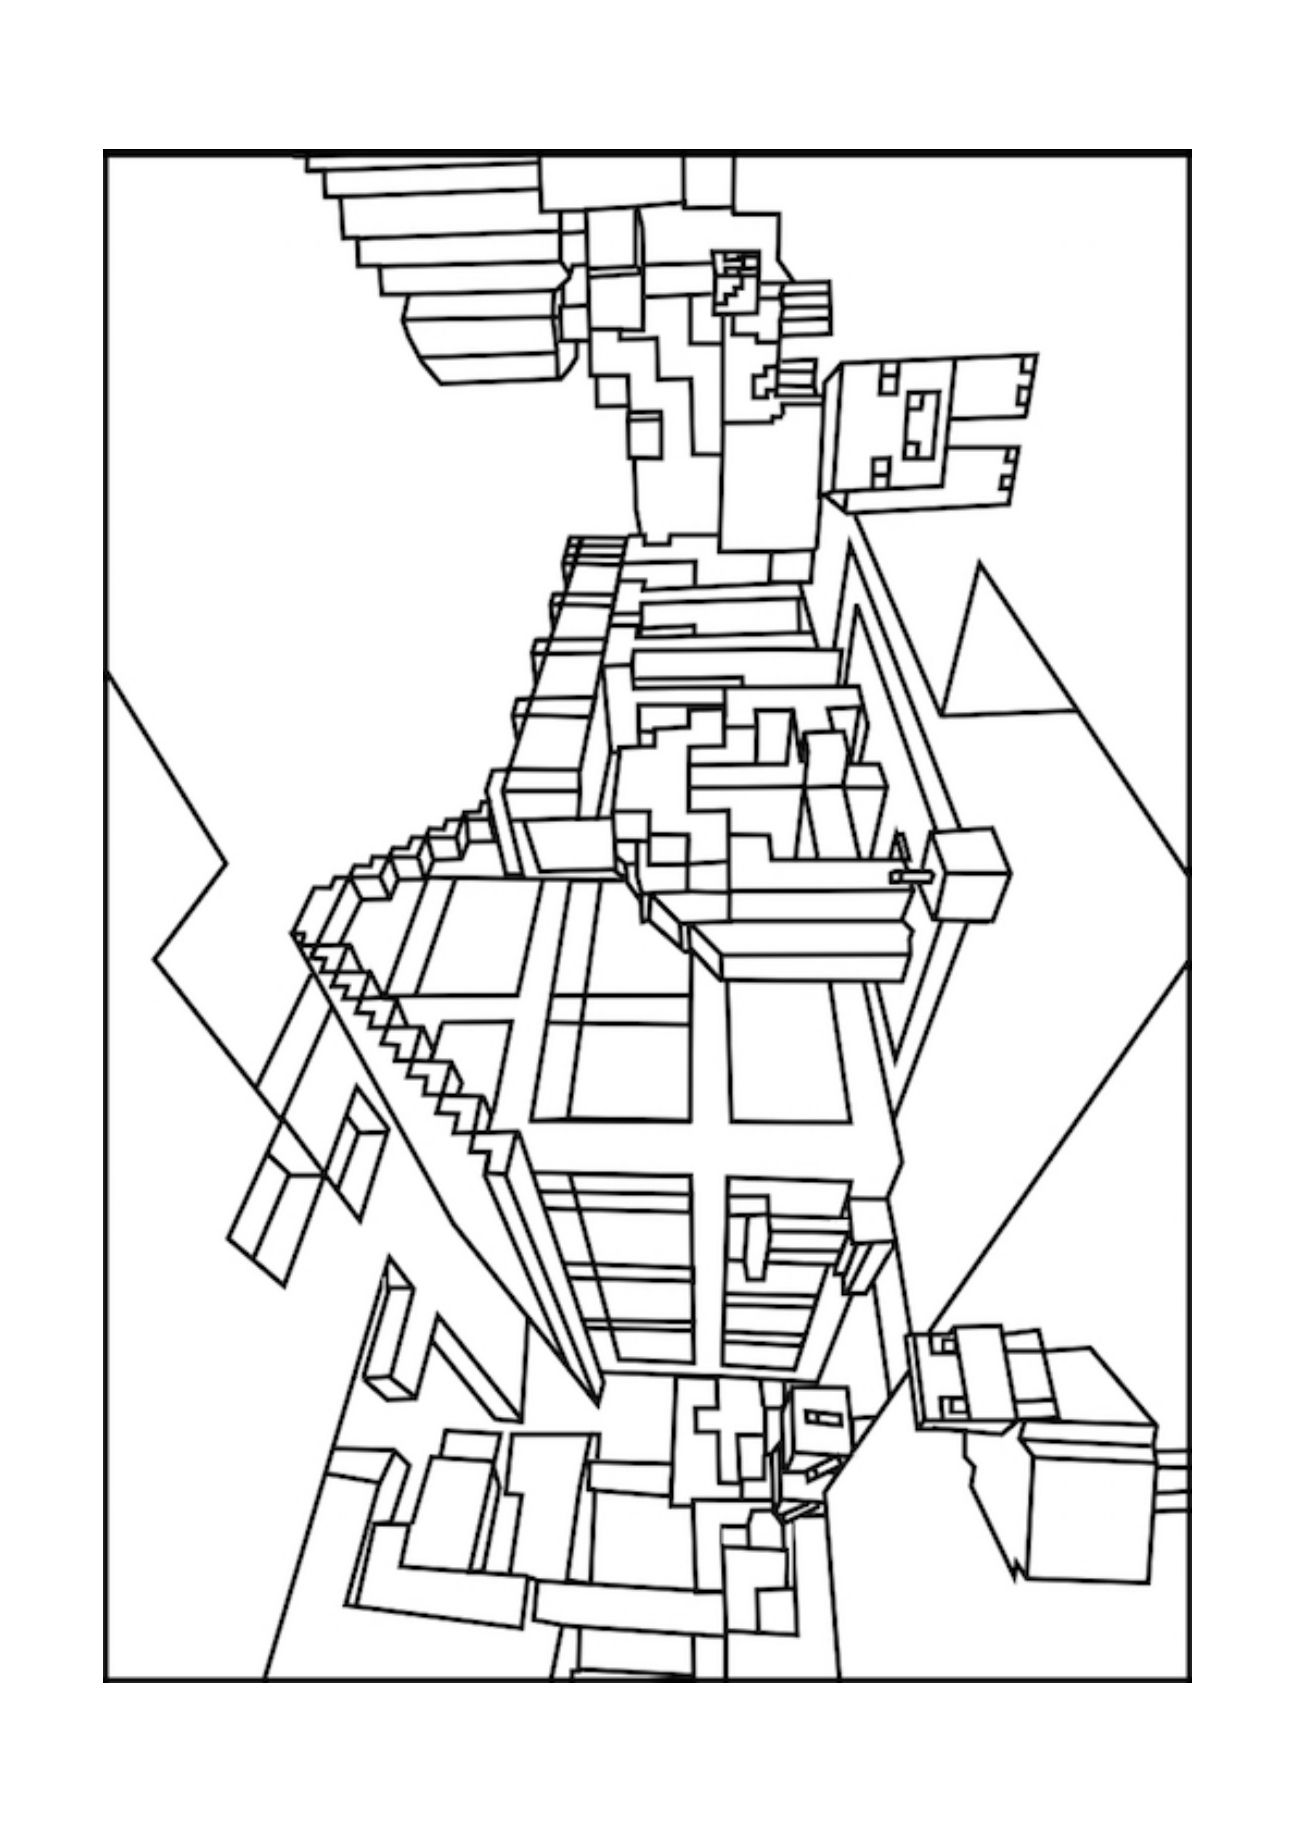 A minecraft house coloring page